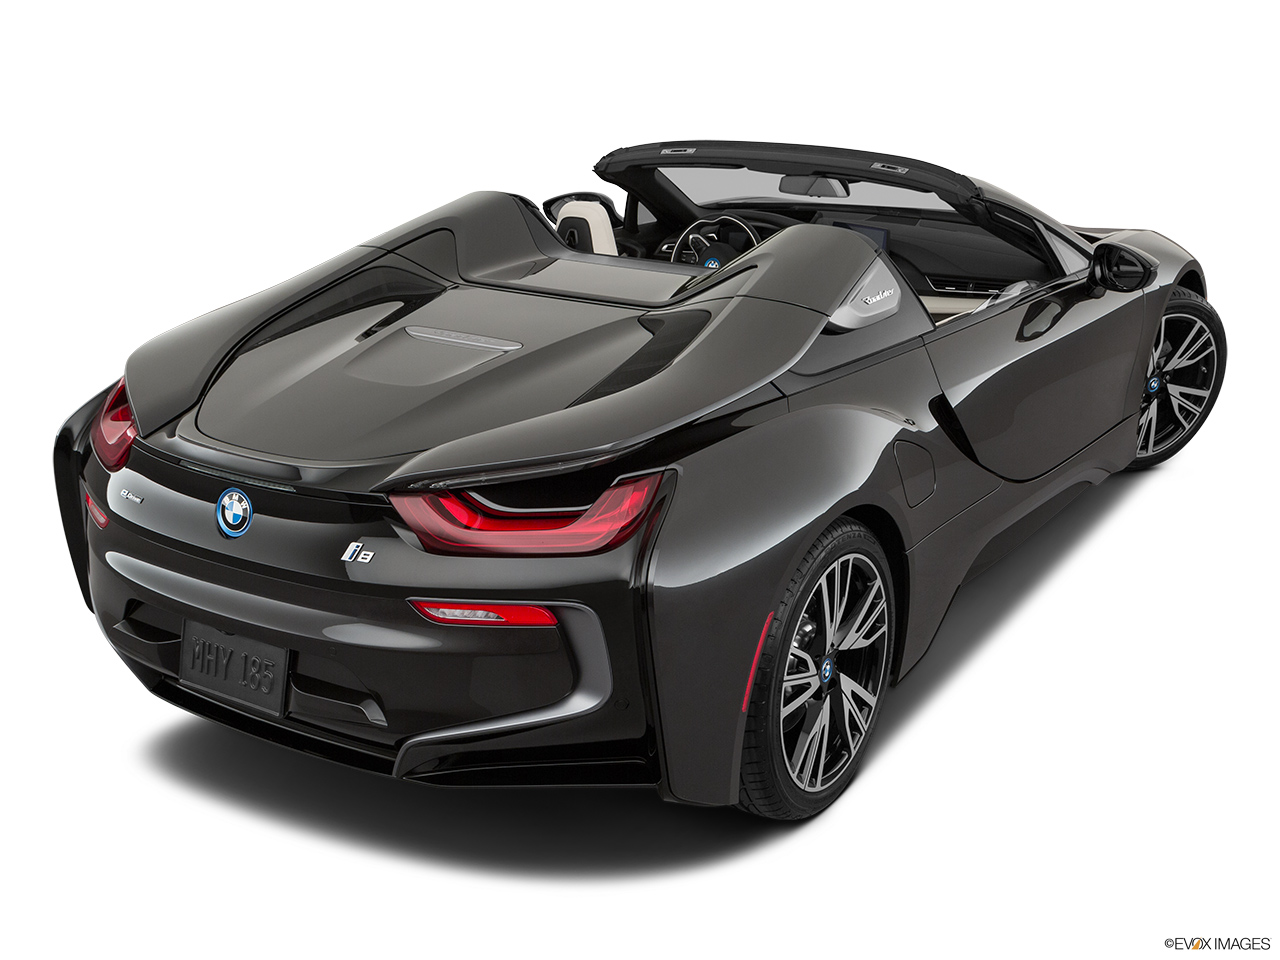 2019 BMW i8 Roadster Standard World Rear 3/4 angle view.